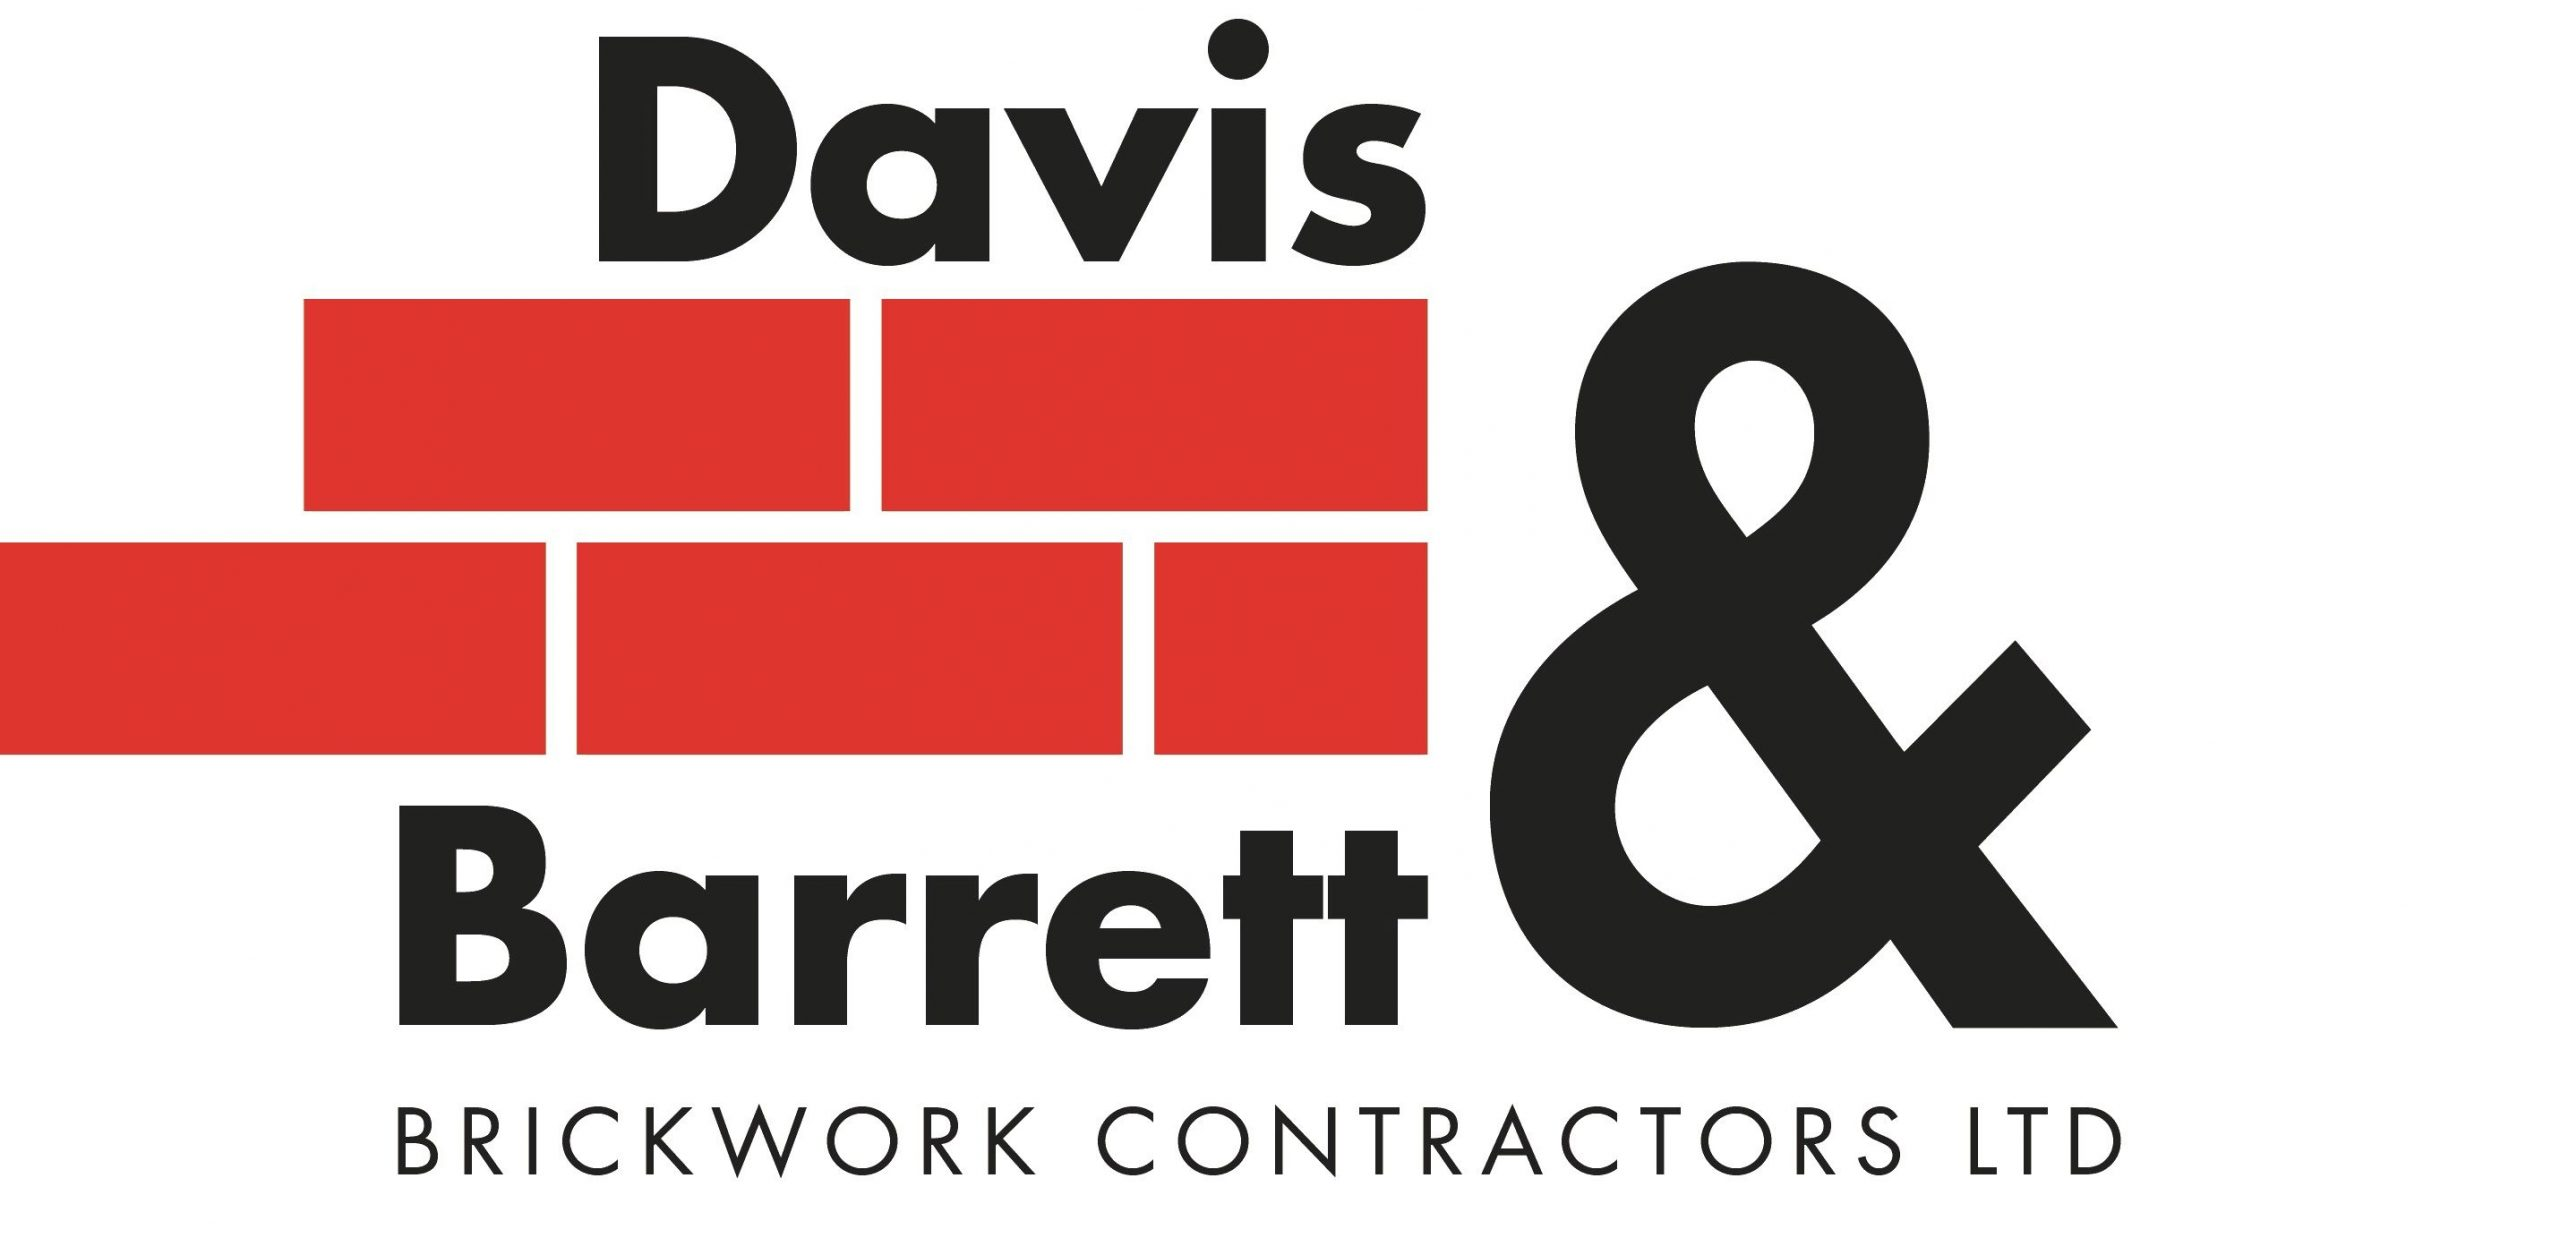 Davis & Barrett Ltd